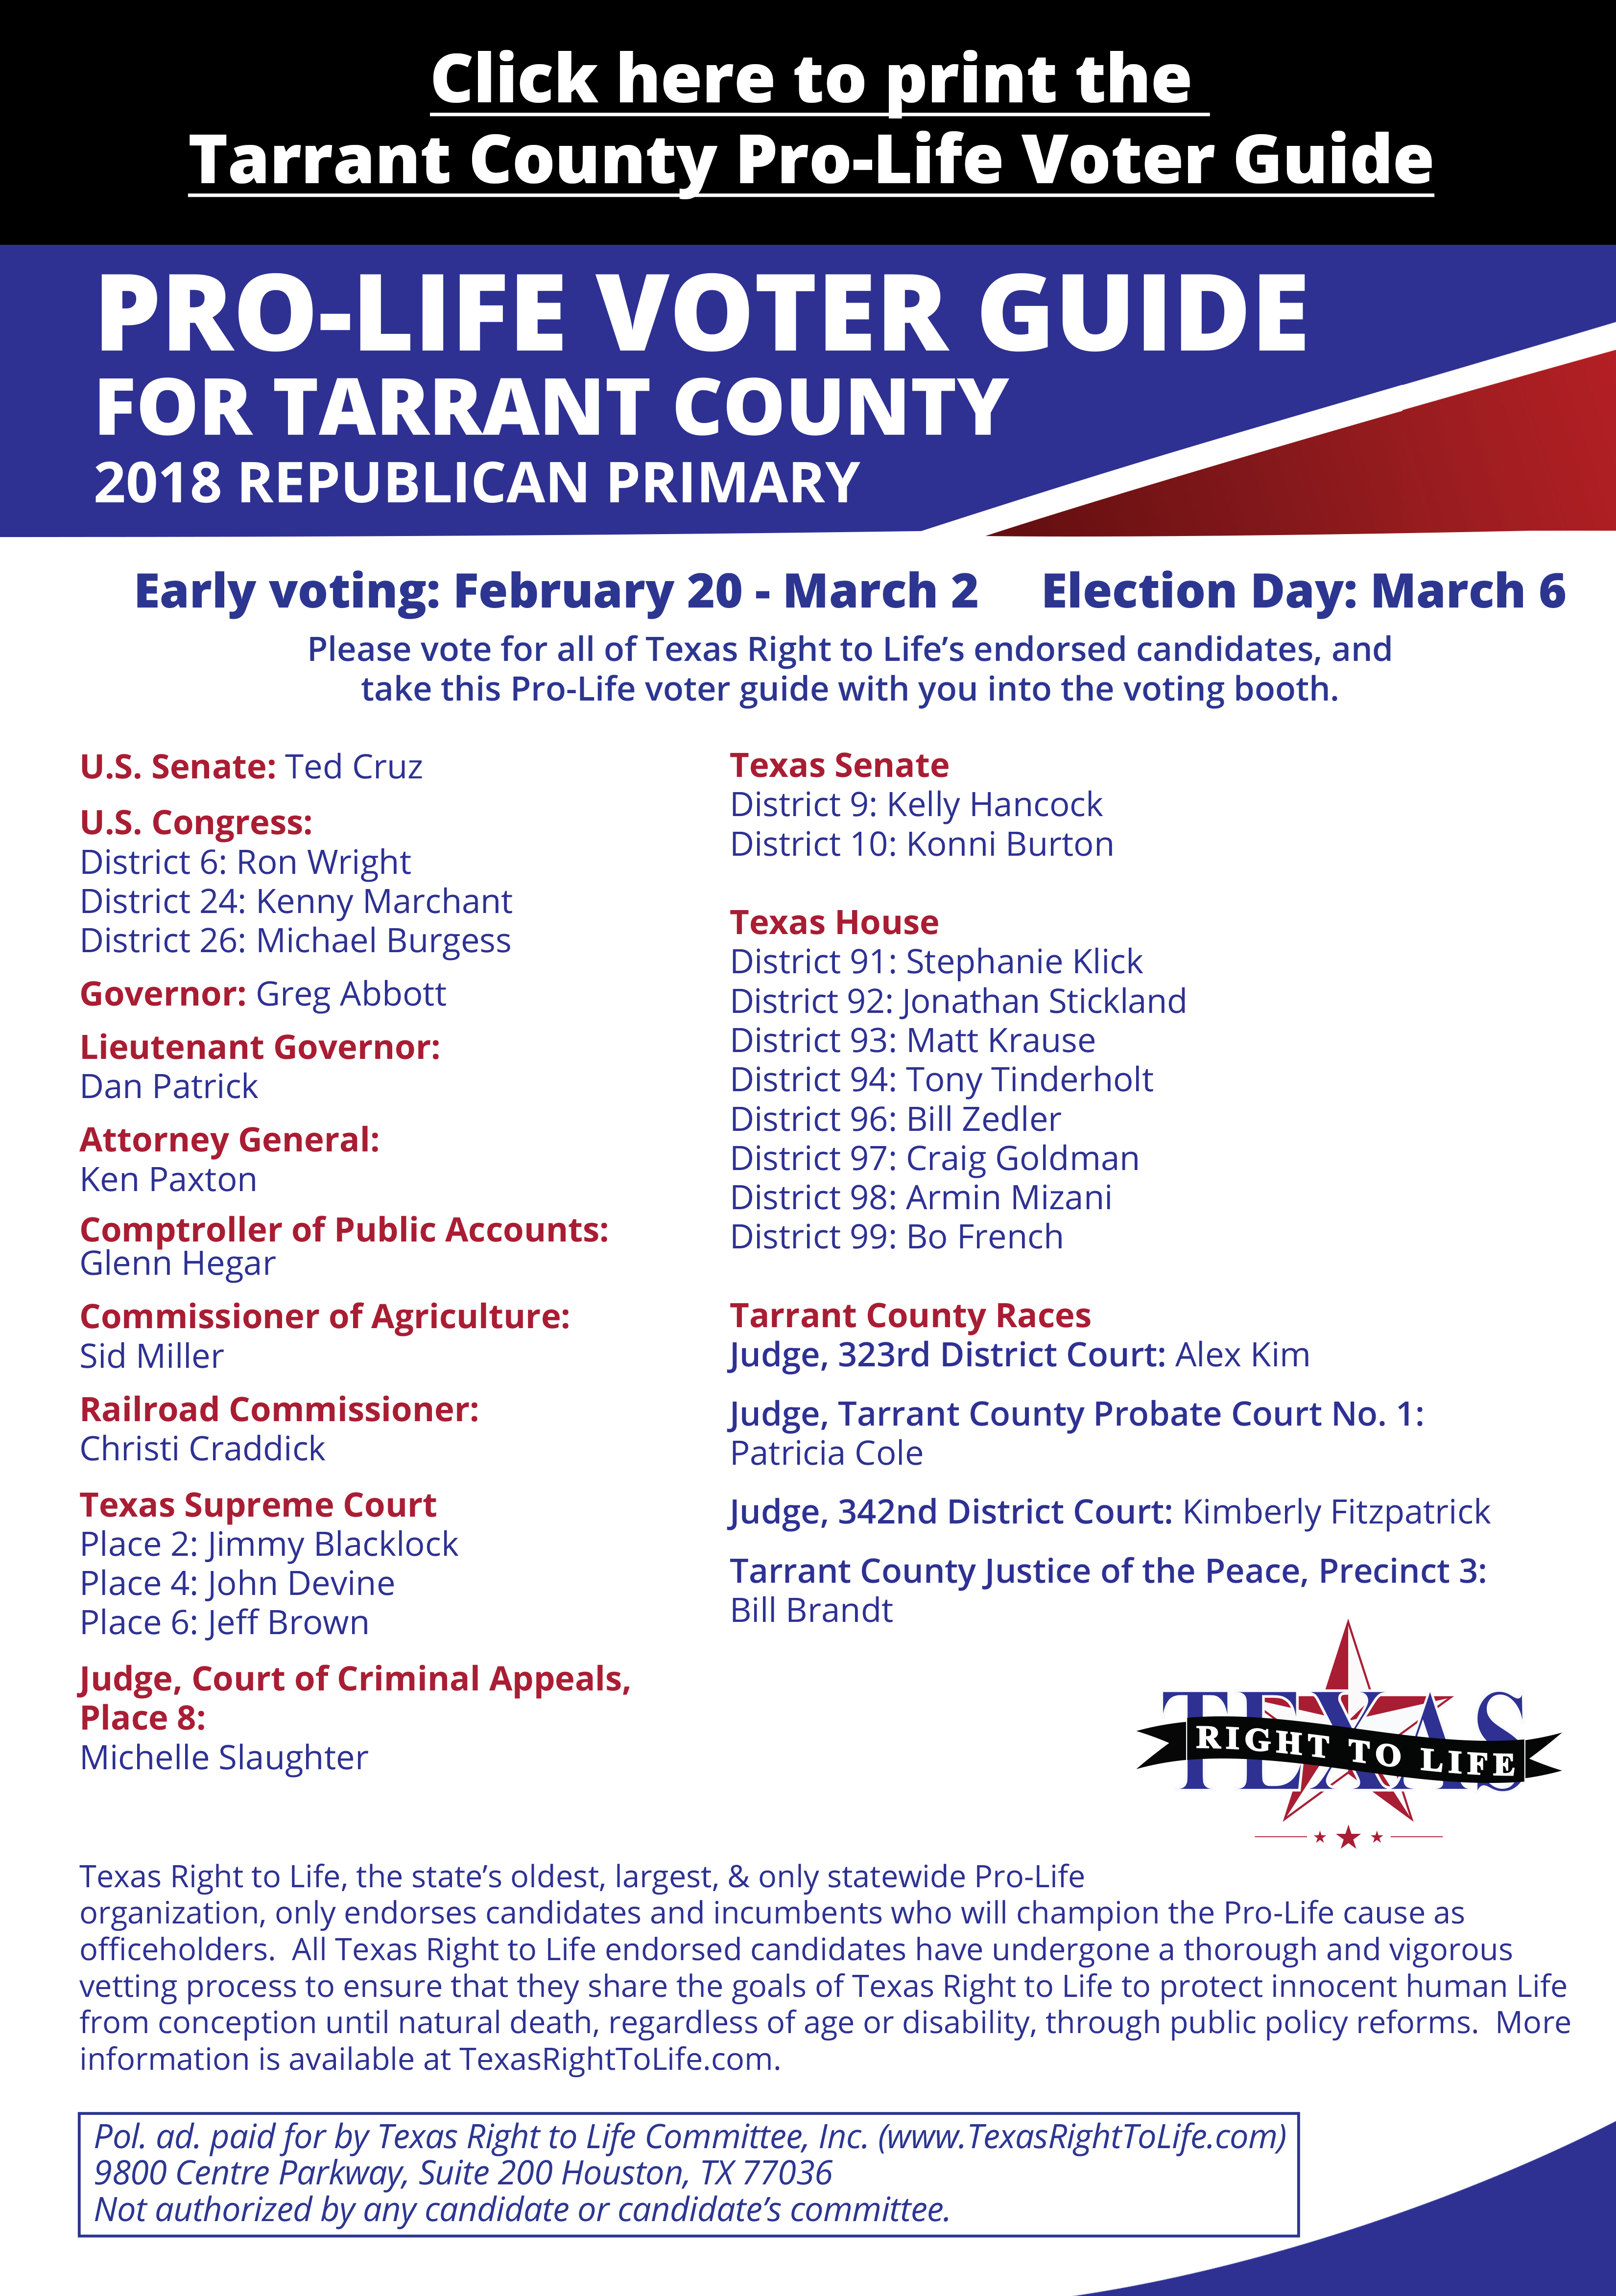 Tampa bay times 2018 florida voter guide: candidates for governor.